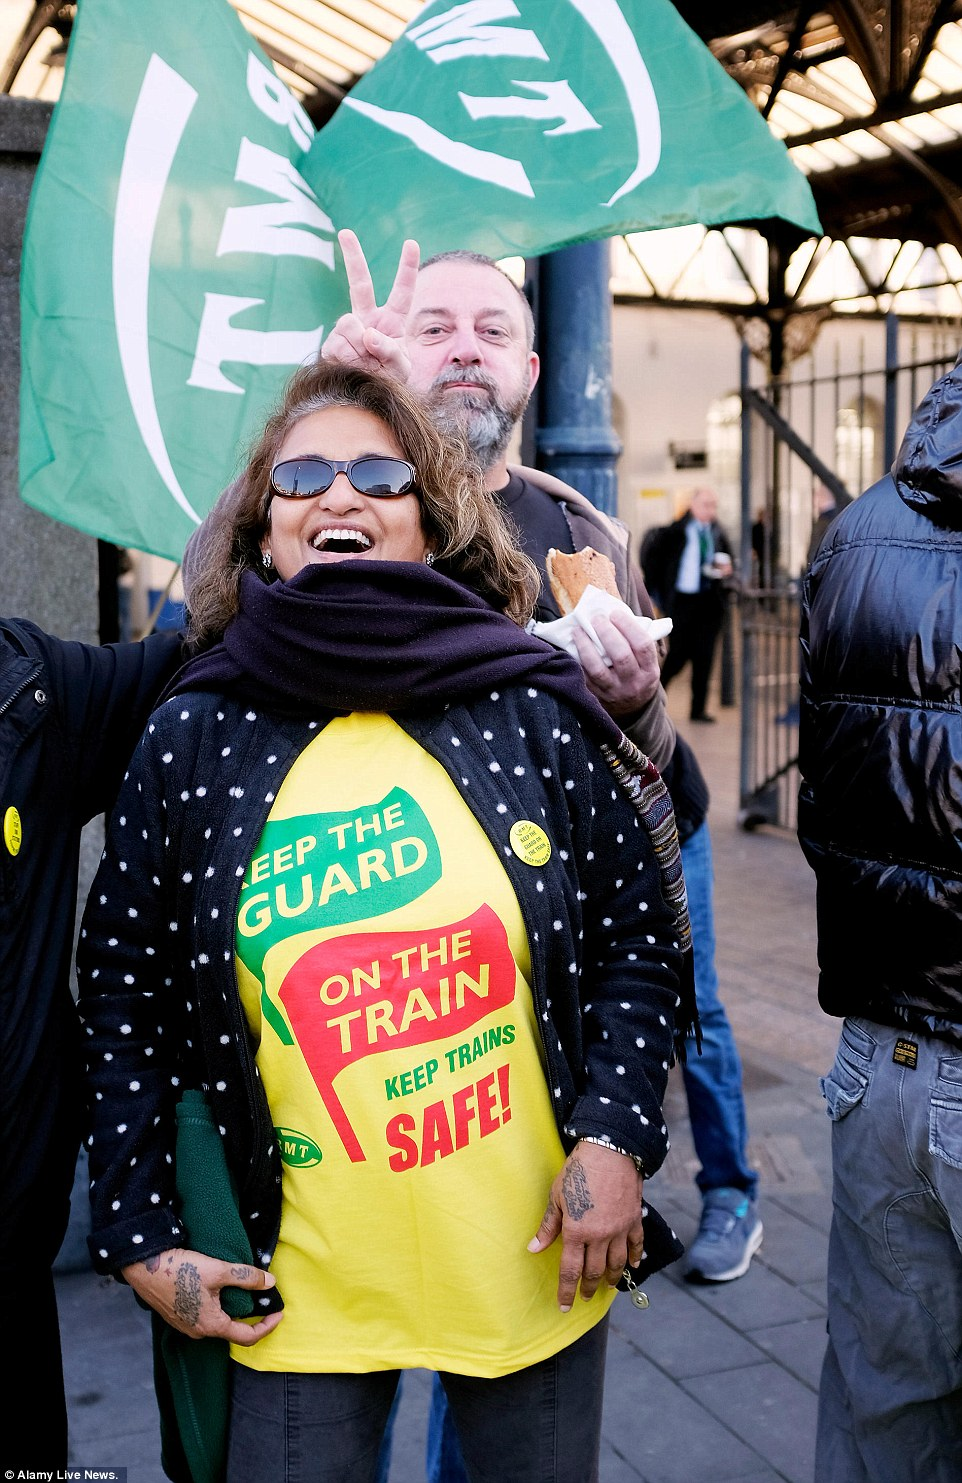 The RMT said earlier that Charles Horton, chief executive of Govia Thameslink Railway, which owns Southern, has been closely involved in discussions at the Rail Safety and Standards Board (RSSB) over the role of conductors